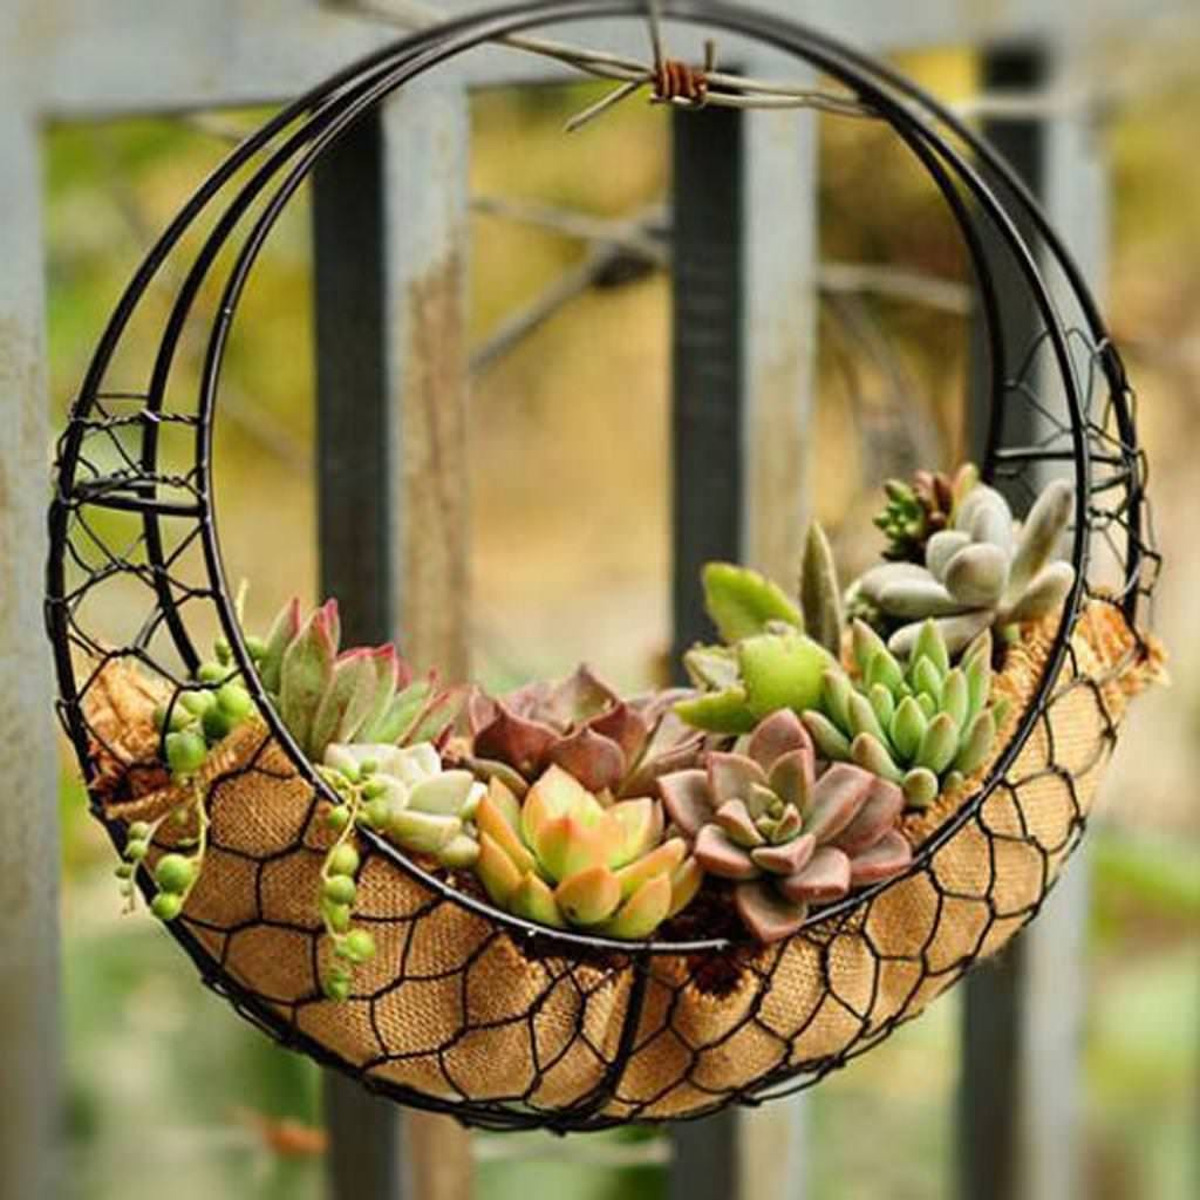 Garden Supplies Home & Garden Intelligent Succulent Iron Moon Shape Hanging Basket Plant Flower Rack For Wedding Home Cafe Shop Party Decoration High Quality 2019 New